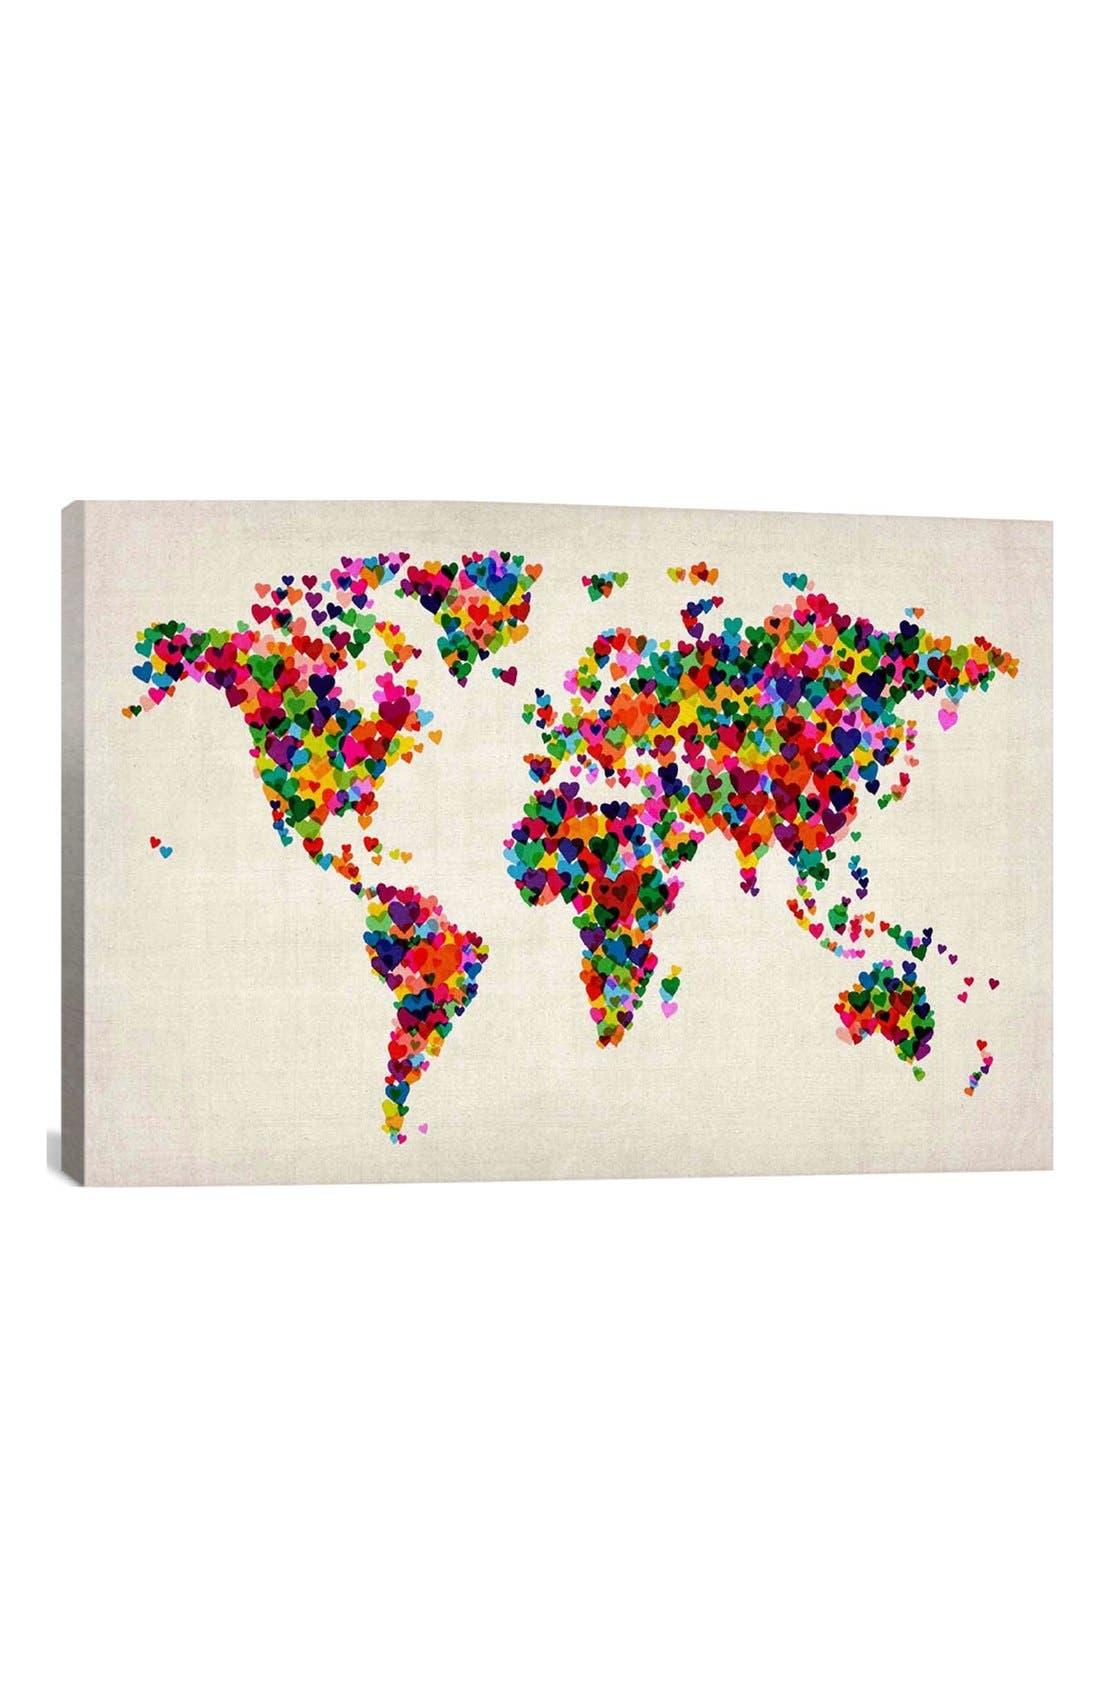 iCanvas 'World Map Hearts - Michael Thompsett' Giclée Print Canvas Art